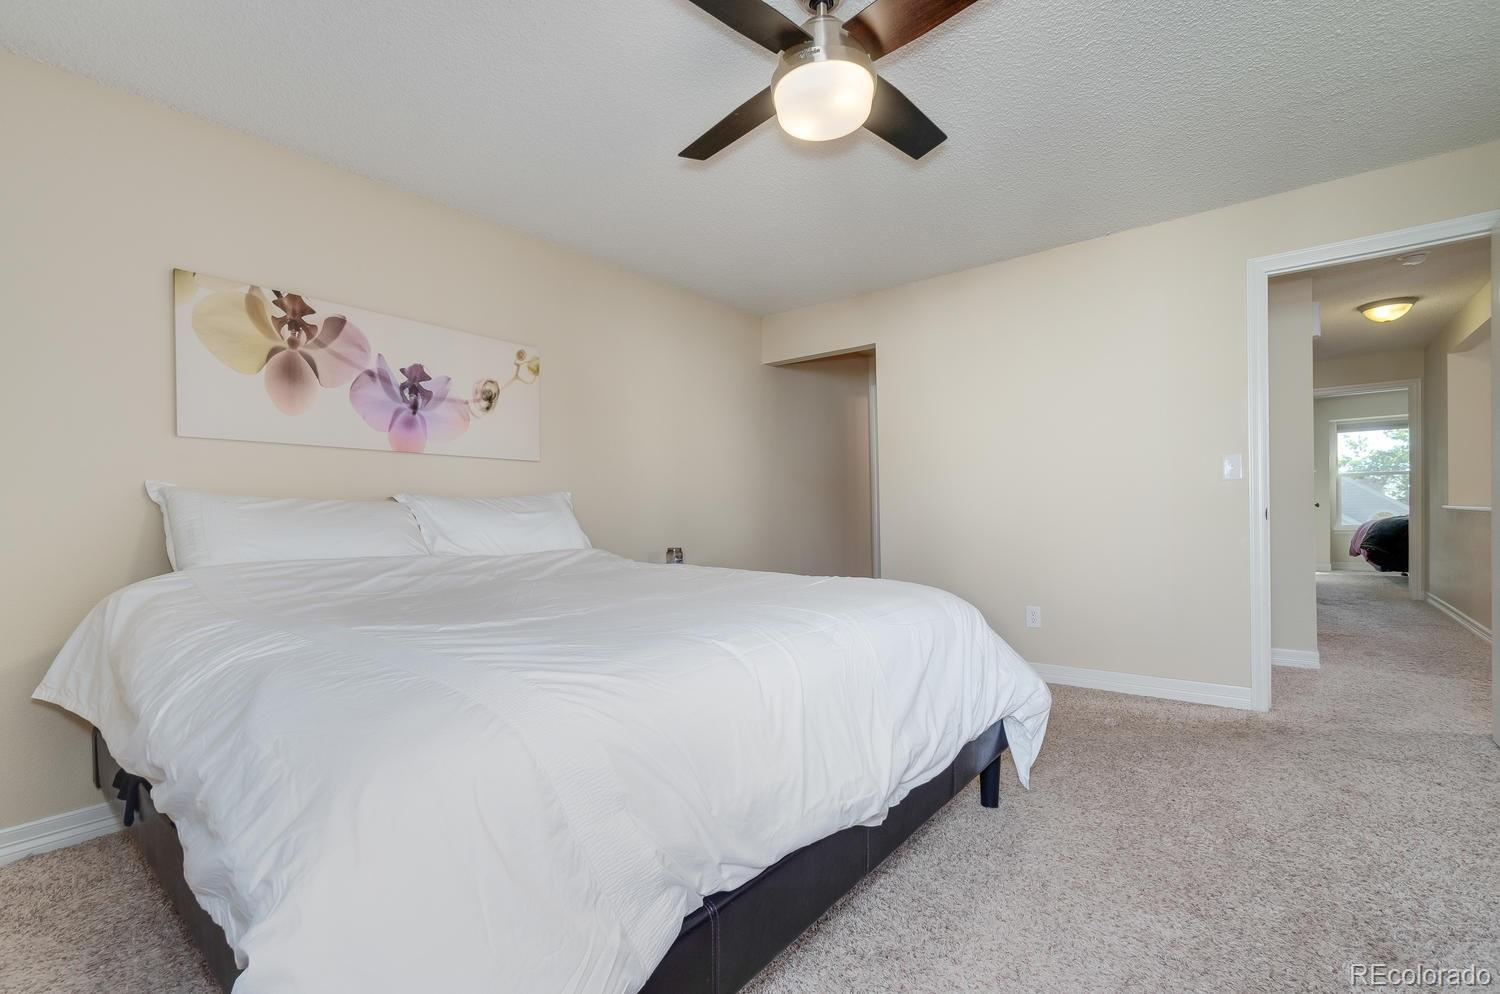 MLS# 2006537 - 19 - 5629 S Youngfield Way, Littleton, CO 80127